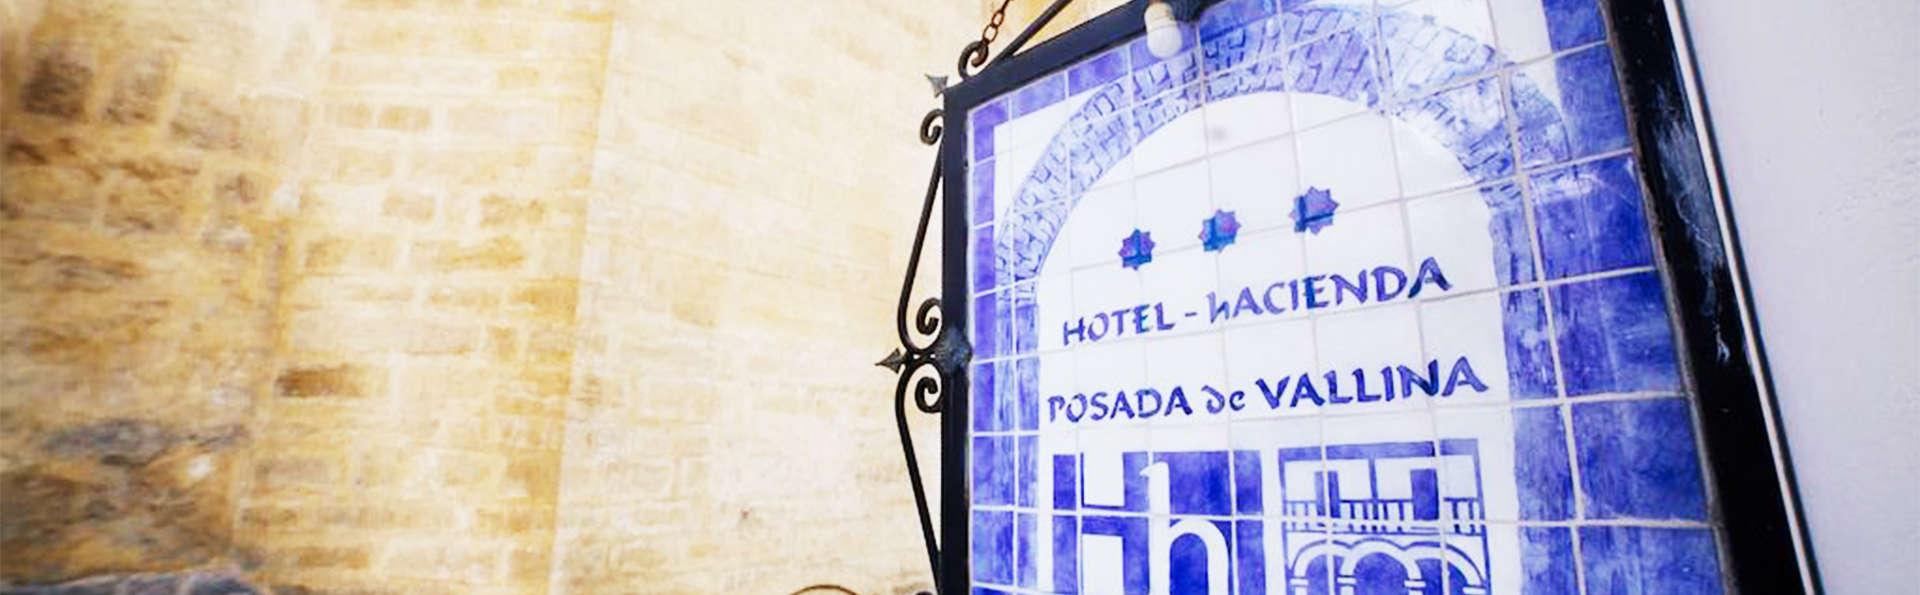 Hotel Hacienda Posada de Vallina - EDIT_ext2.jpg